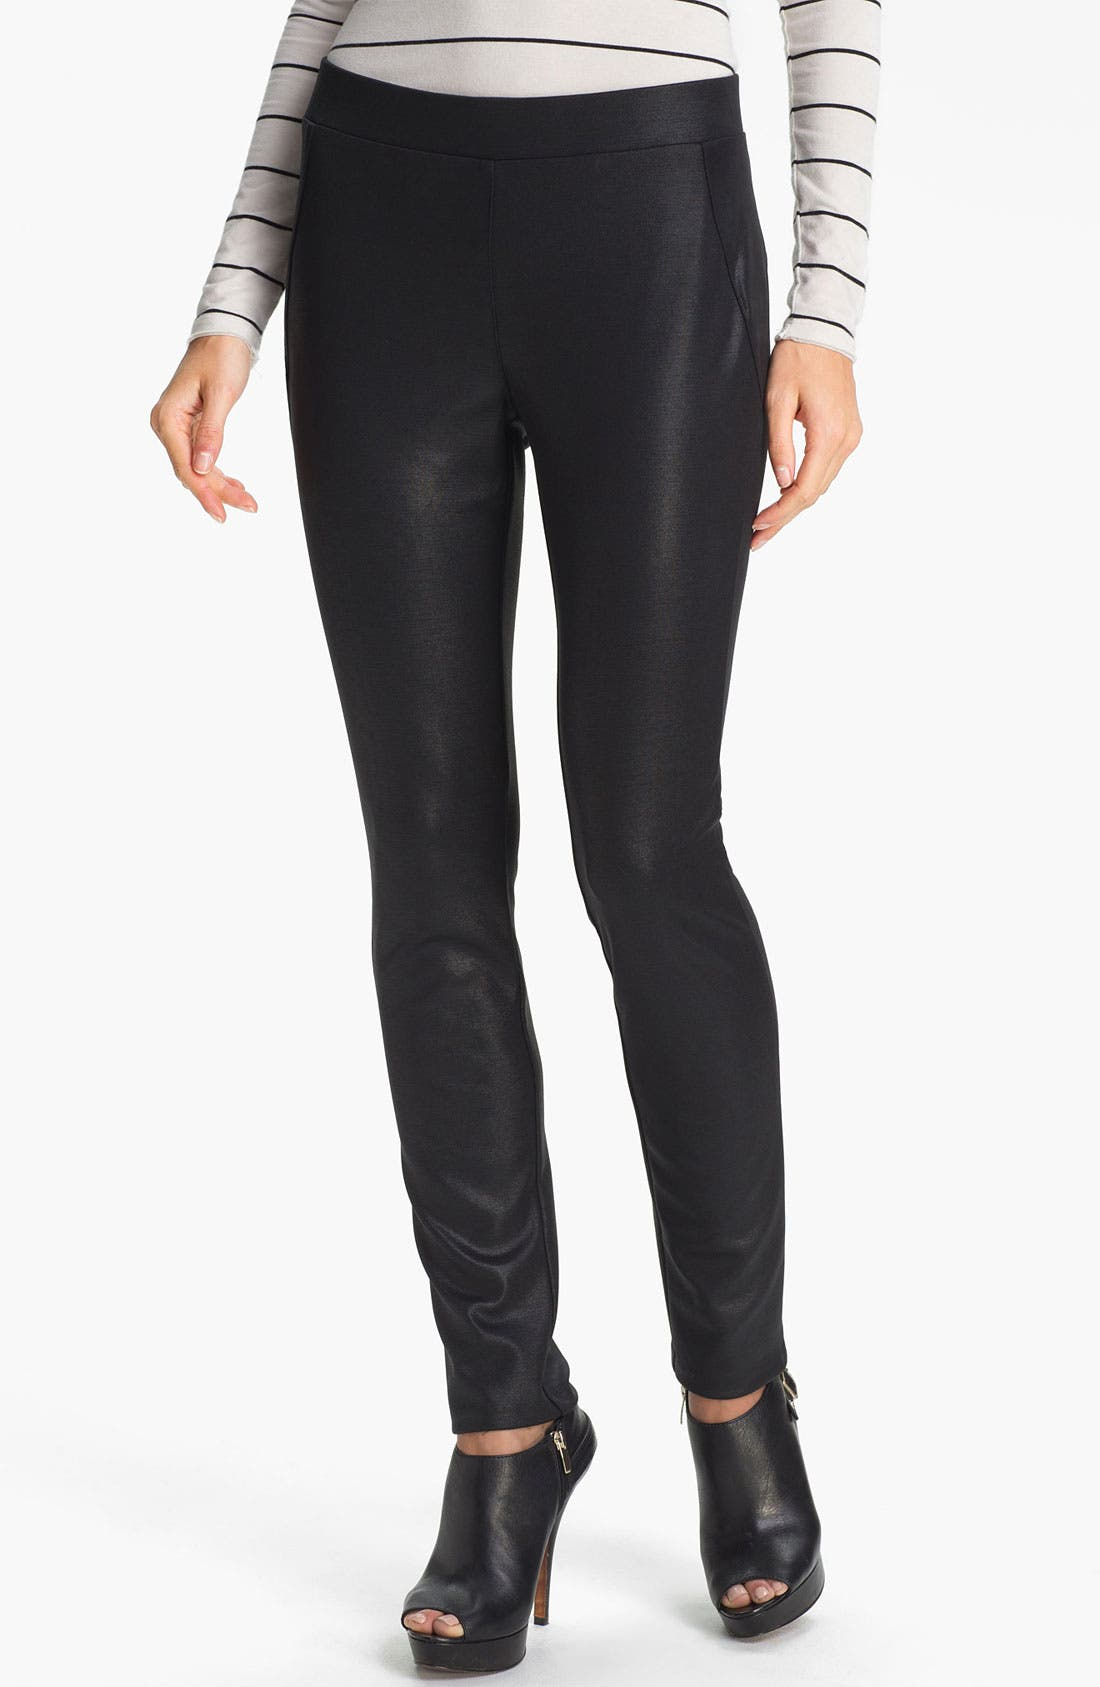 Alternate Image 1 Selected - Two by Vince Camuto Textured Leggings